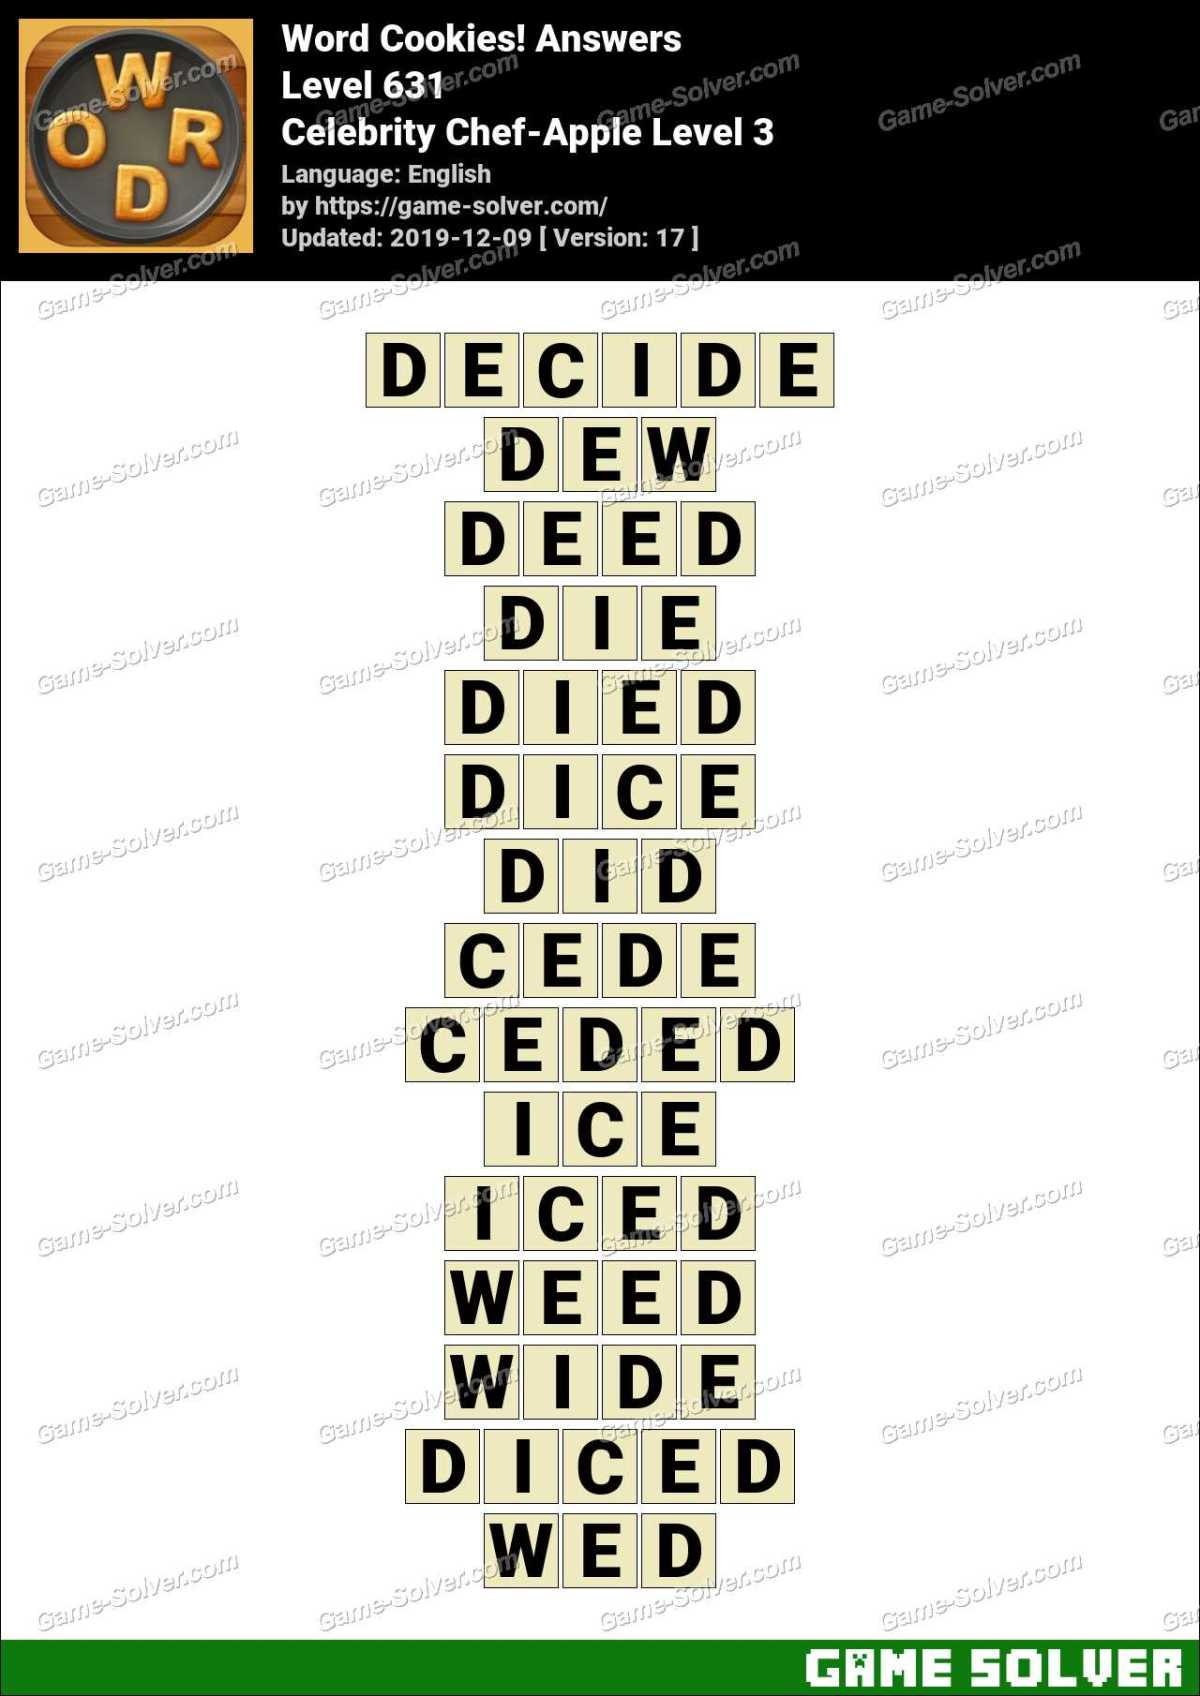 Word Cookies Celebrity Chef-Apple Level 3 Answers